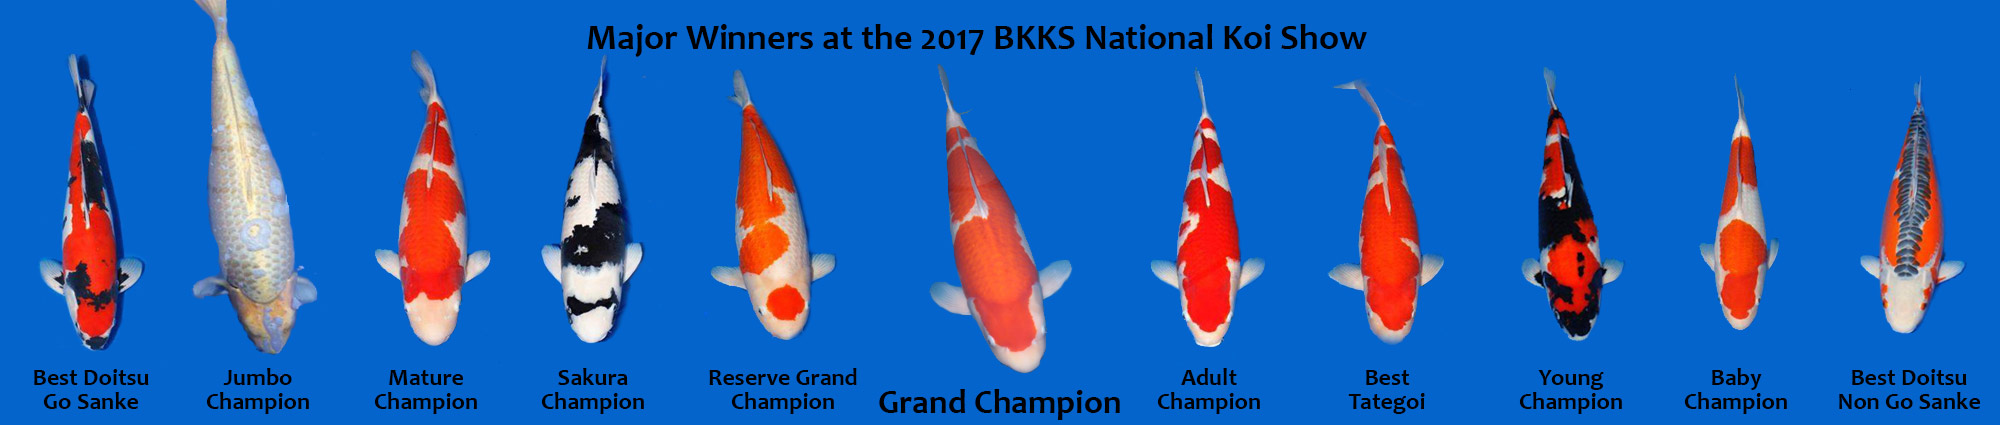 2017 National Koi Show Winners